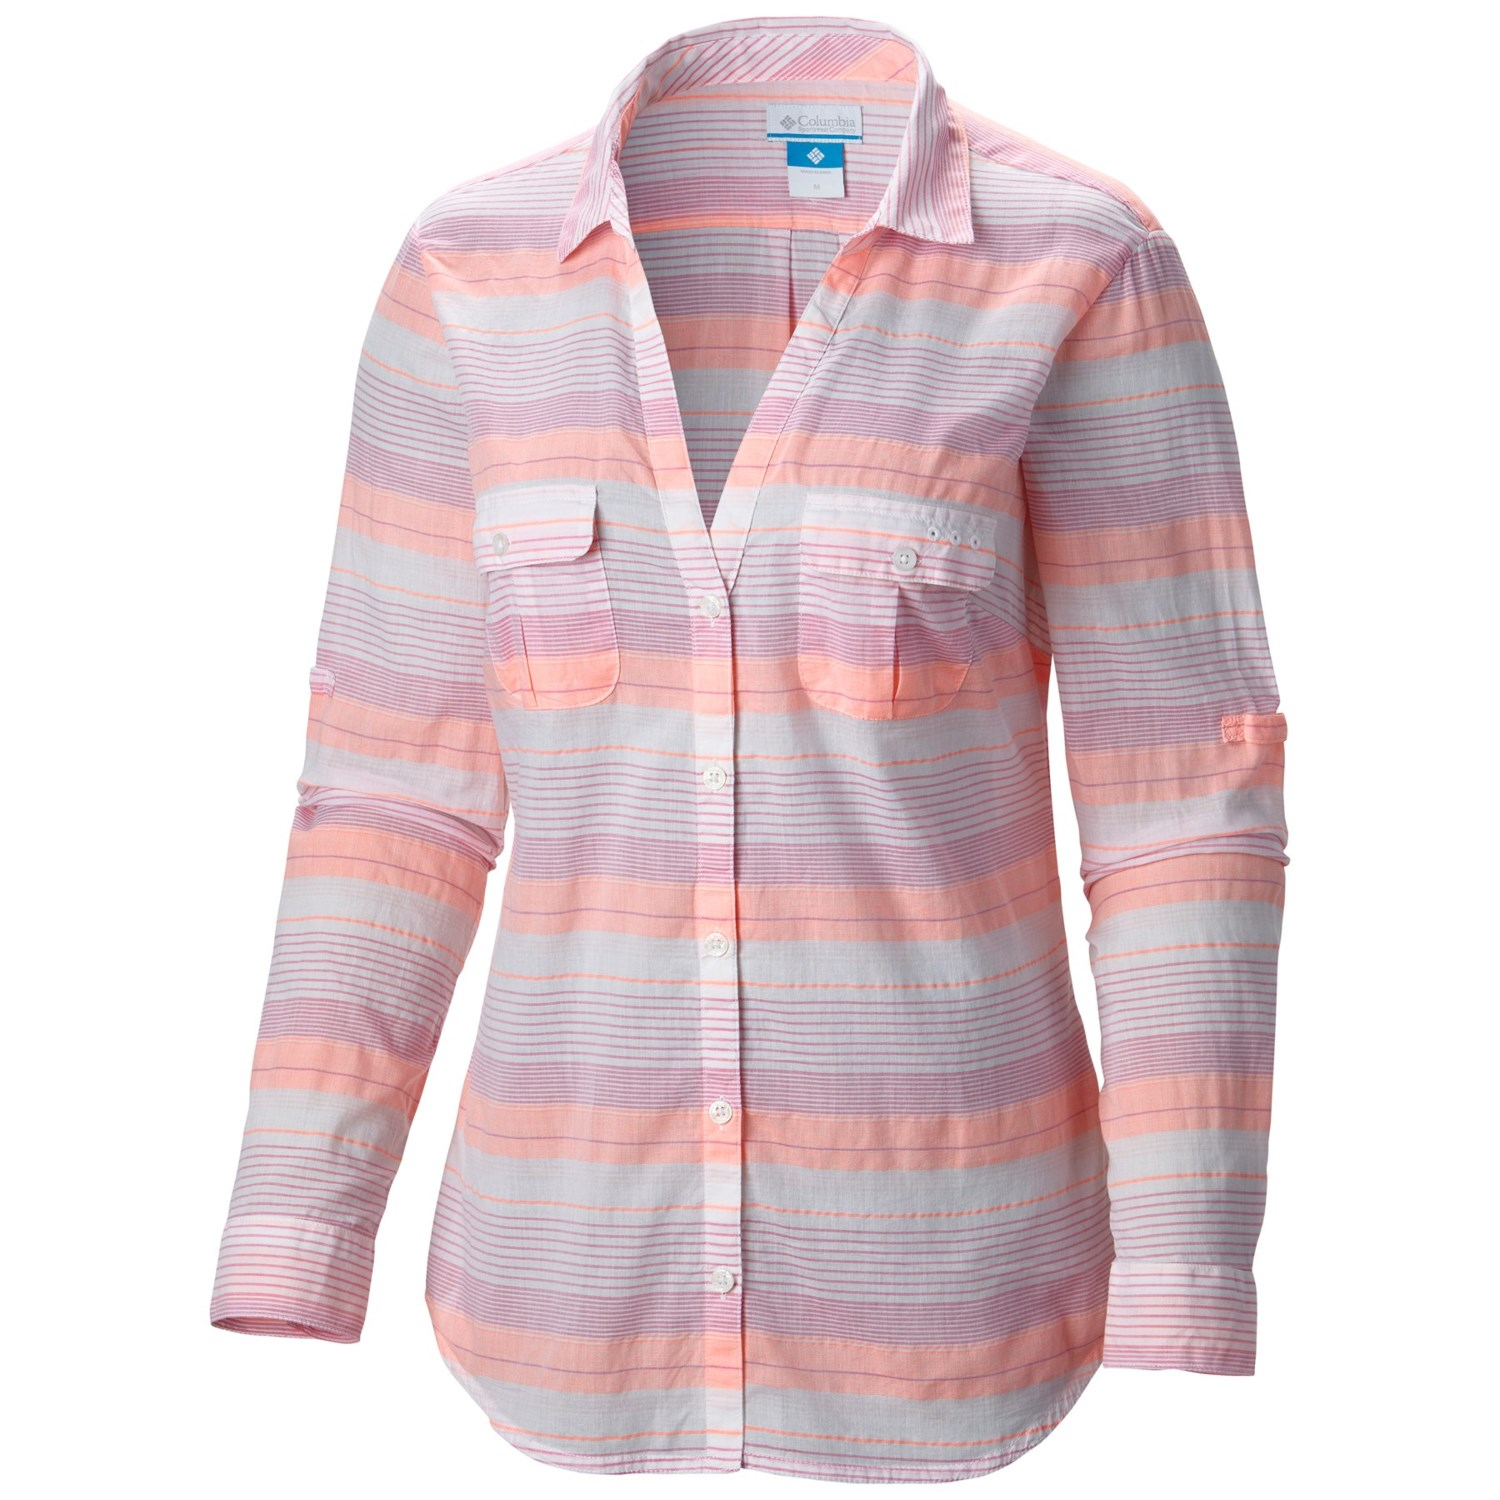 Columbia sportswear pfg sun drifter shirt long sleeve for Columbia shirts womens pfg